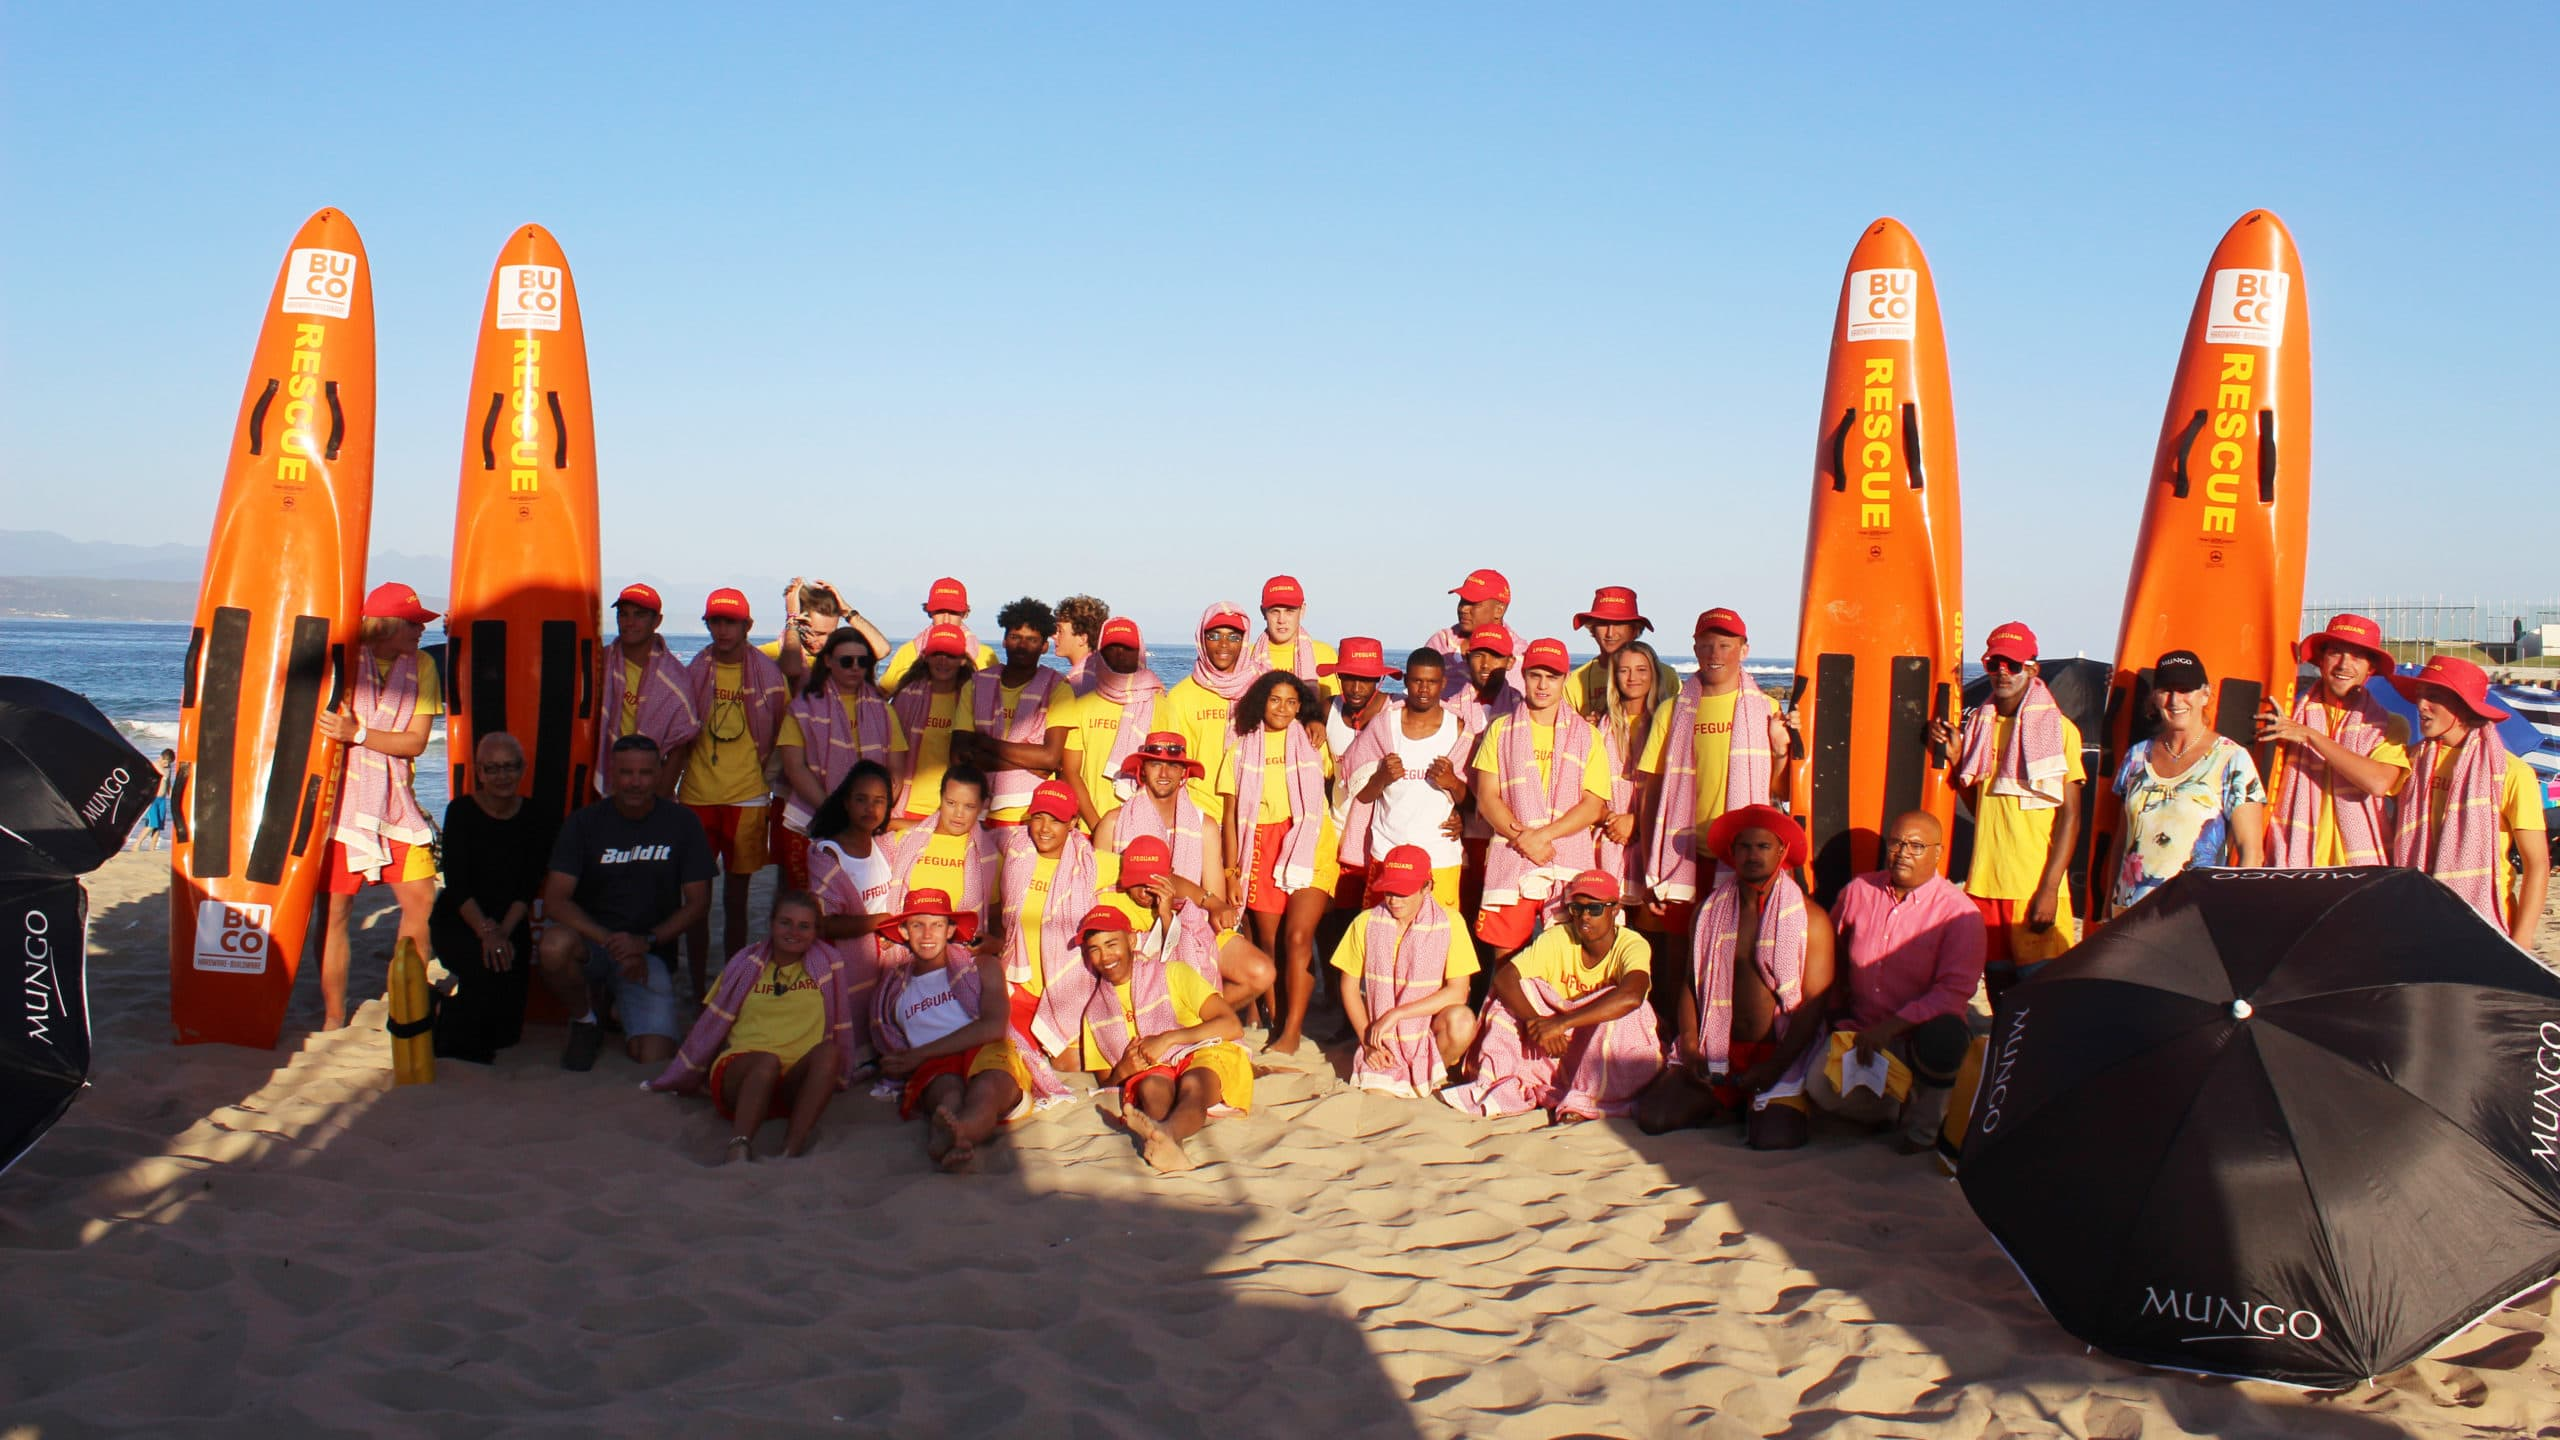 Mungo gifted the Plettenberg Bay lifeguards with limited edition red & yellow Itawuli towels